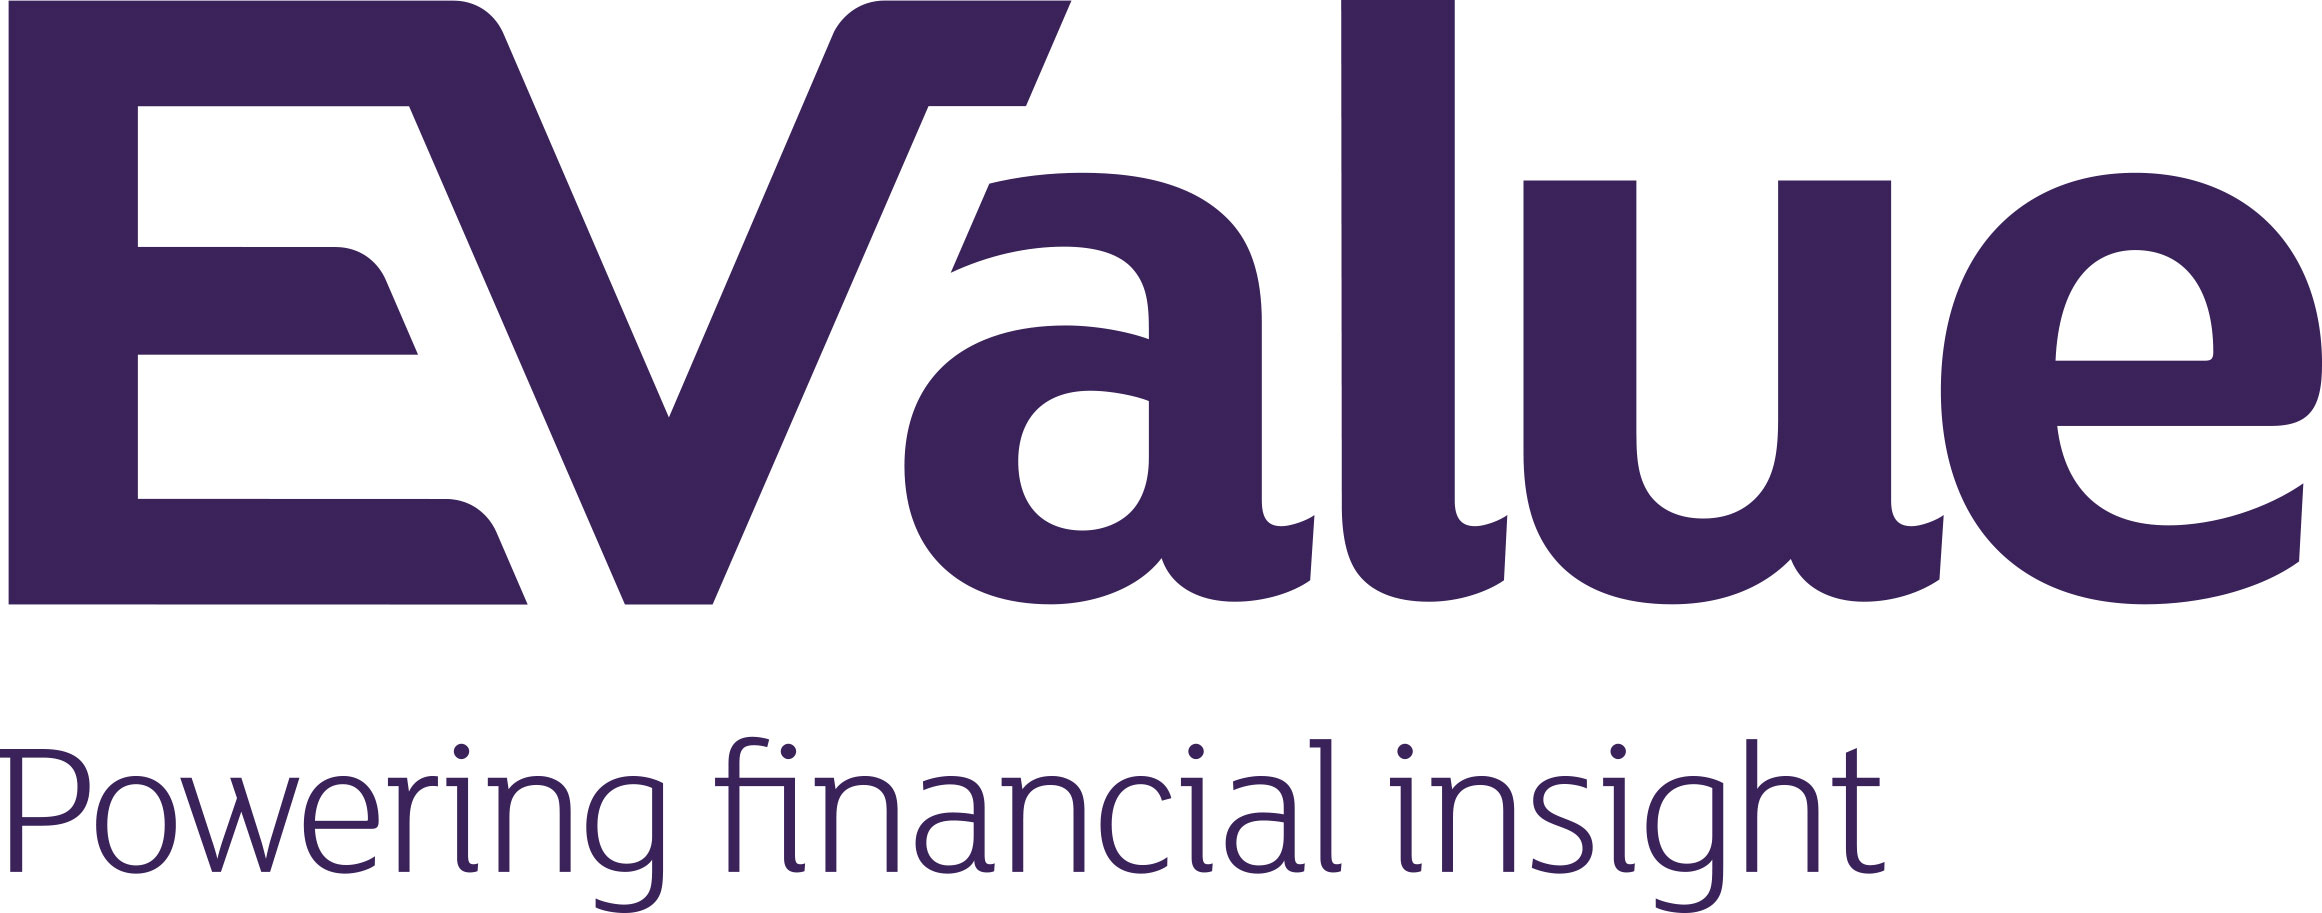 EValue powering financial insight